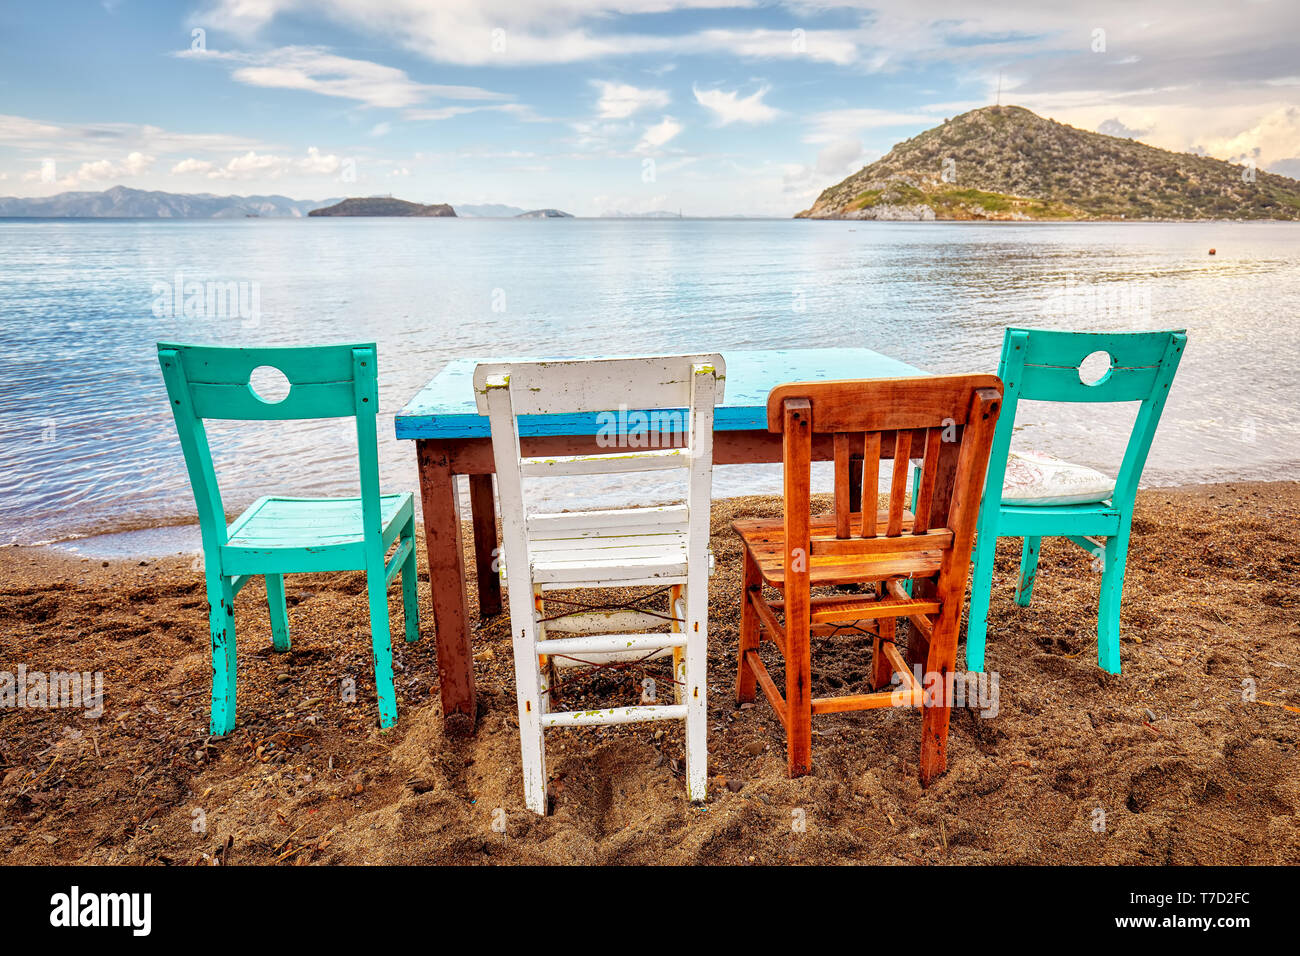 Colorful Retro Wooden Chairs And A Table Lined Up On The Beach At The Seaside In Gumusluk Bodrum Turkey Stock Photo Alamy